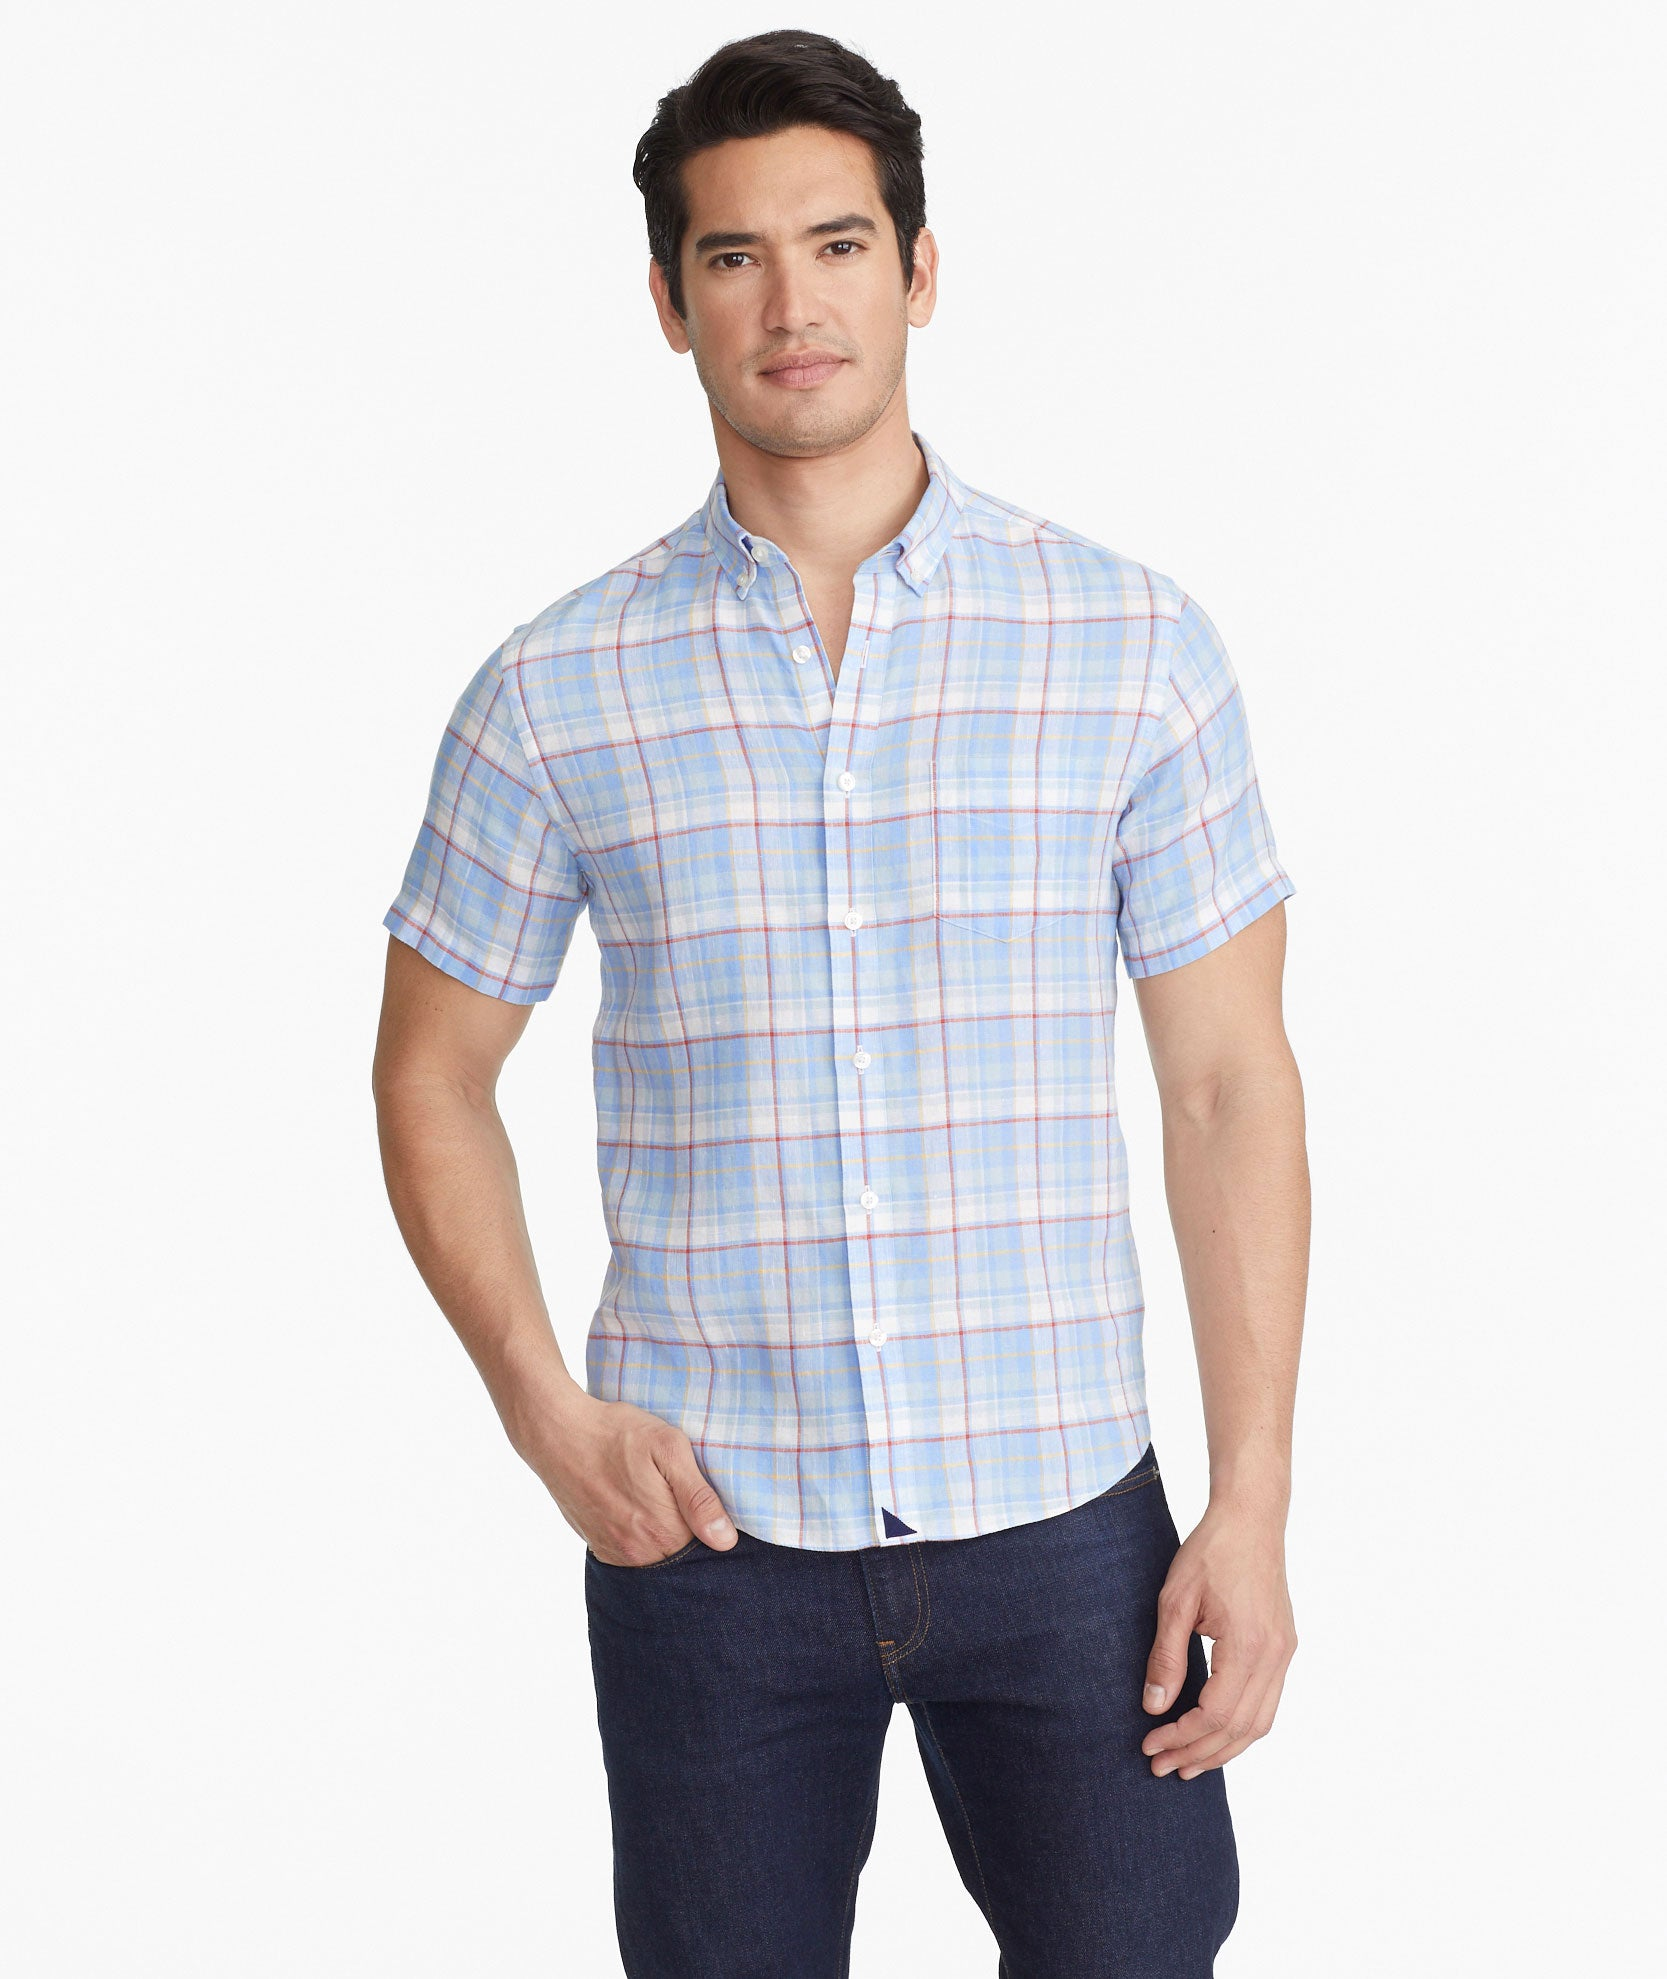 fb032623026c90 Matisco- Wrinkle Resistant Blue Red & Yellow Plaid Linen   UNTUCKit